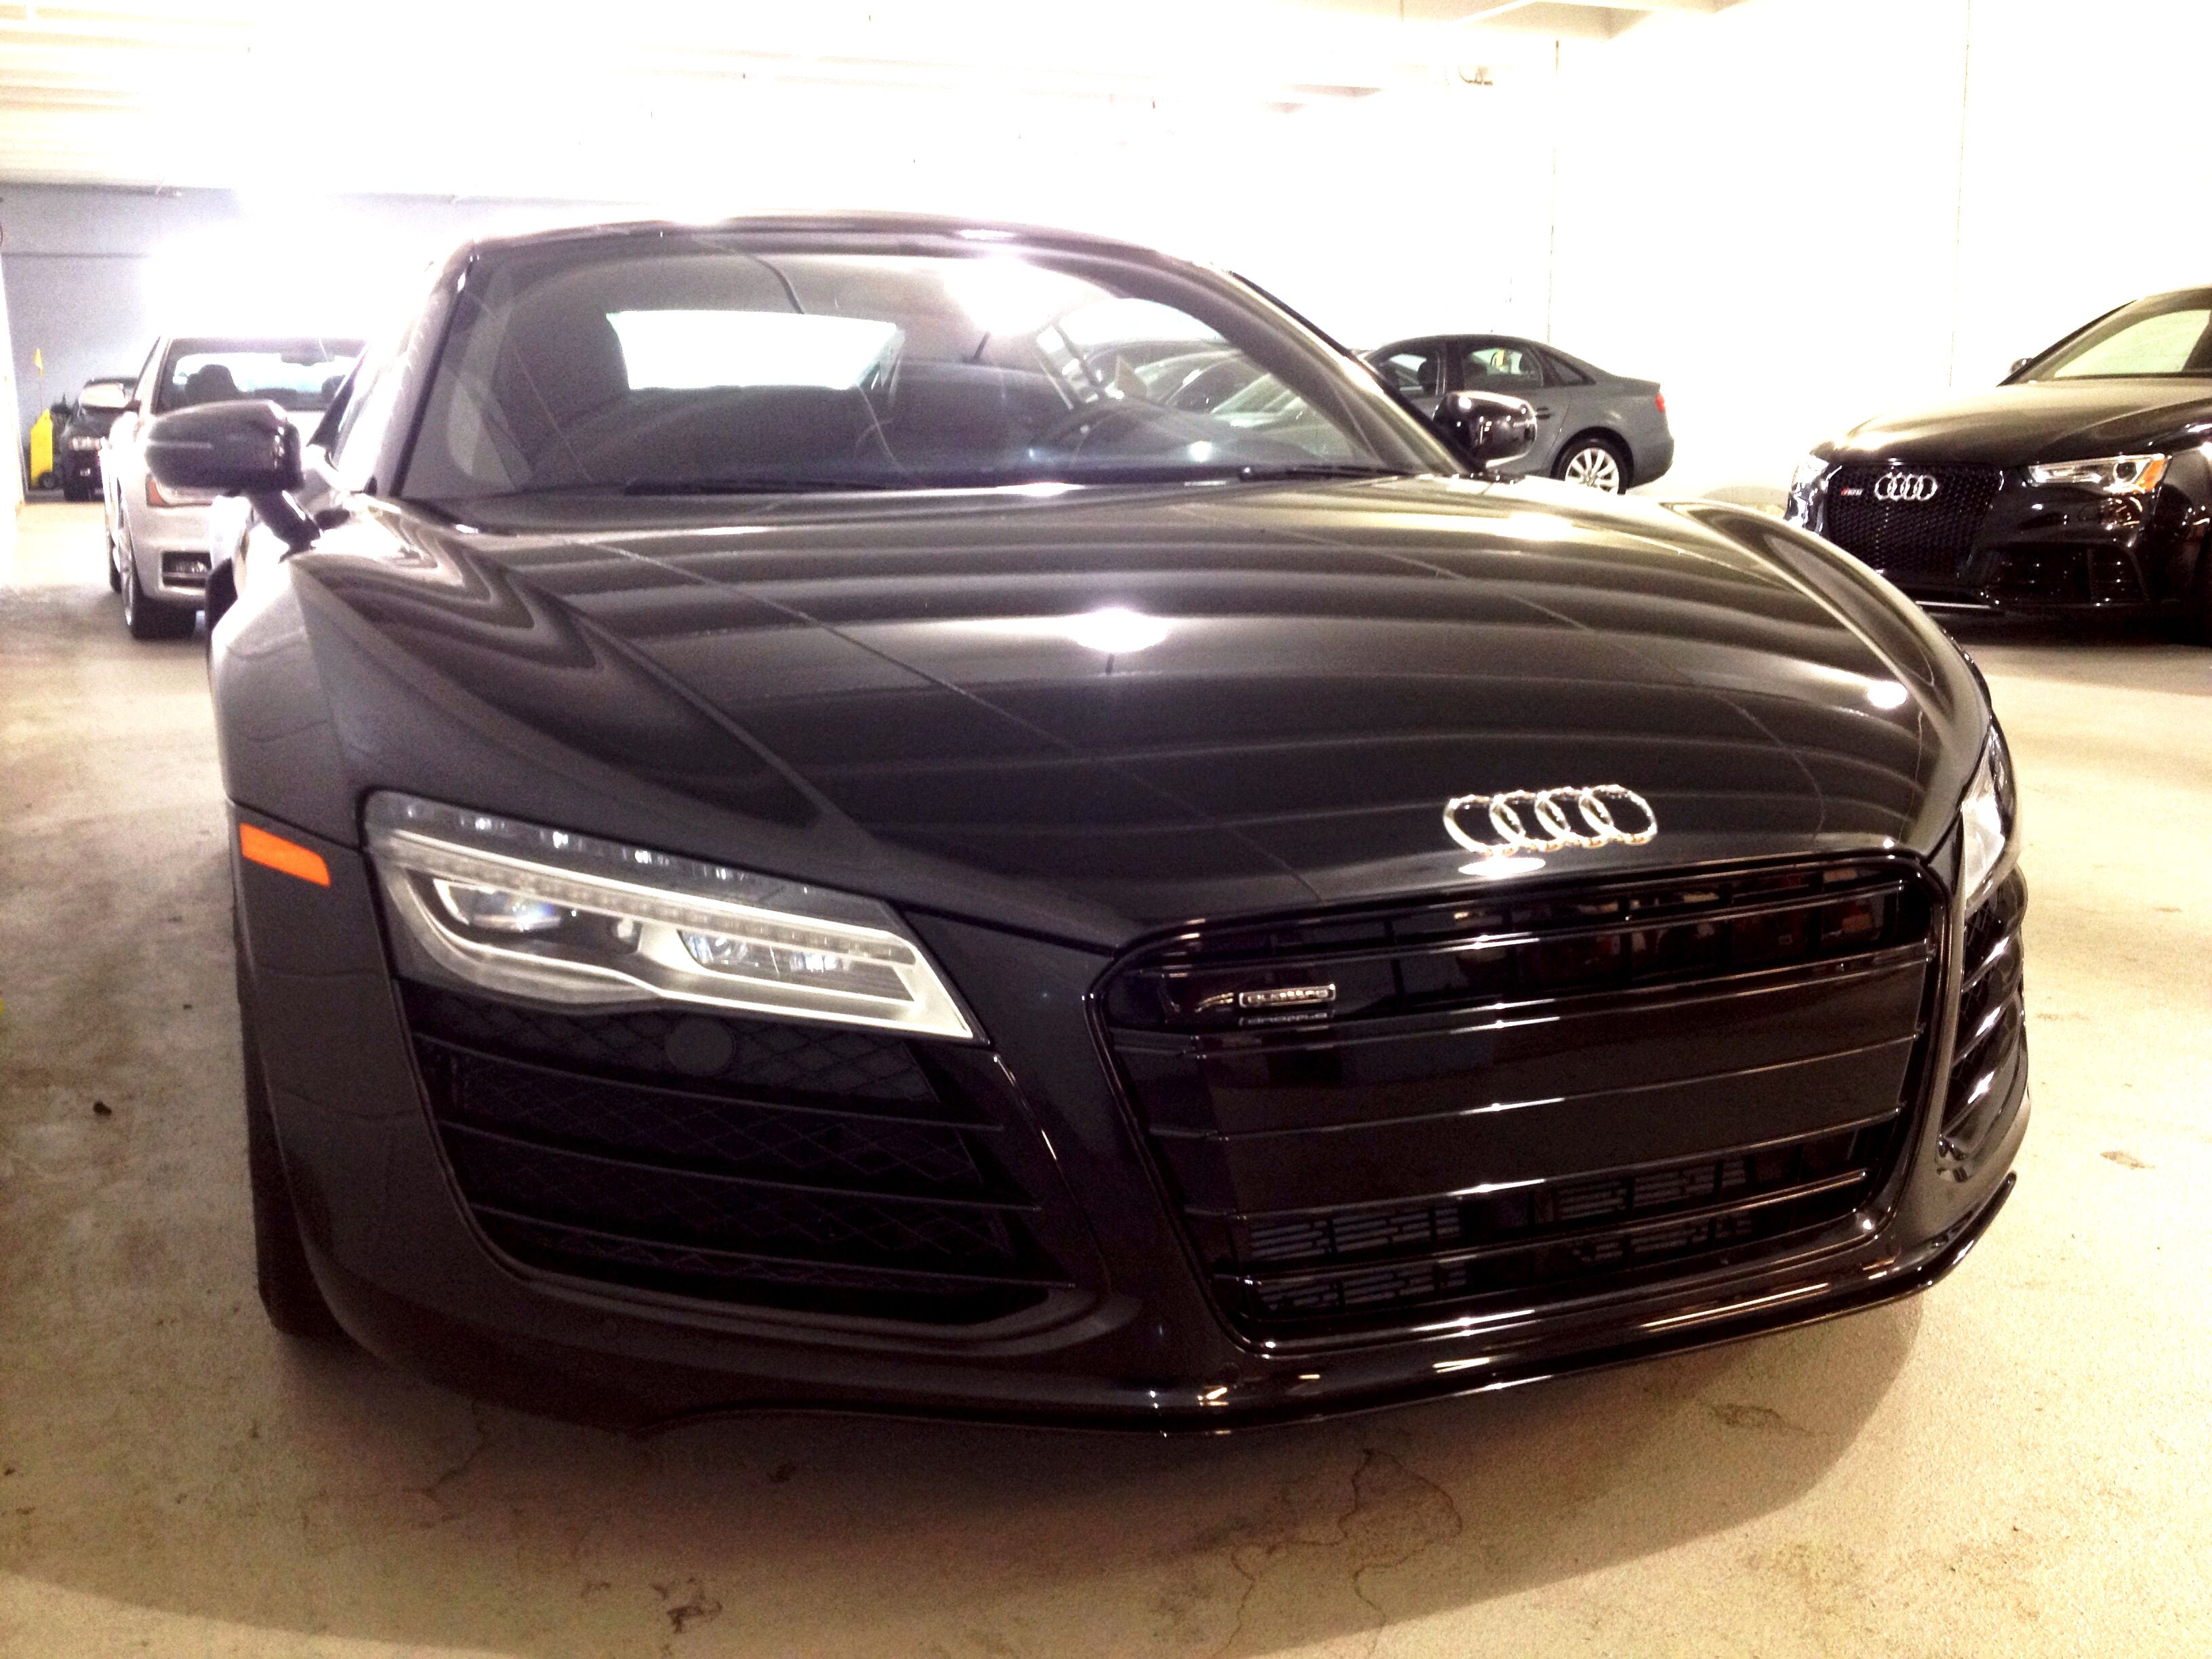 My type of audi r8 phantom black pearl effect audi r8 v10 with audi exclusive